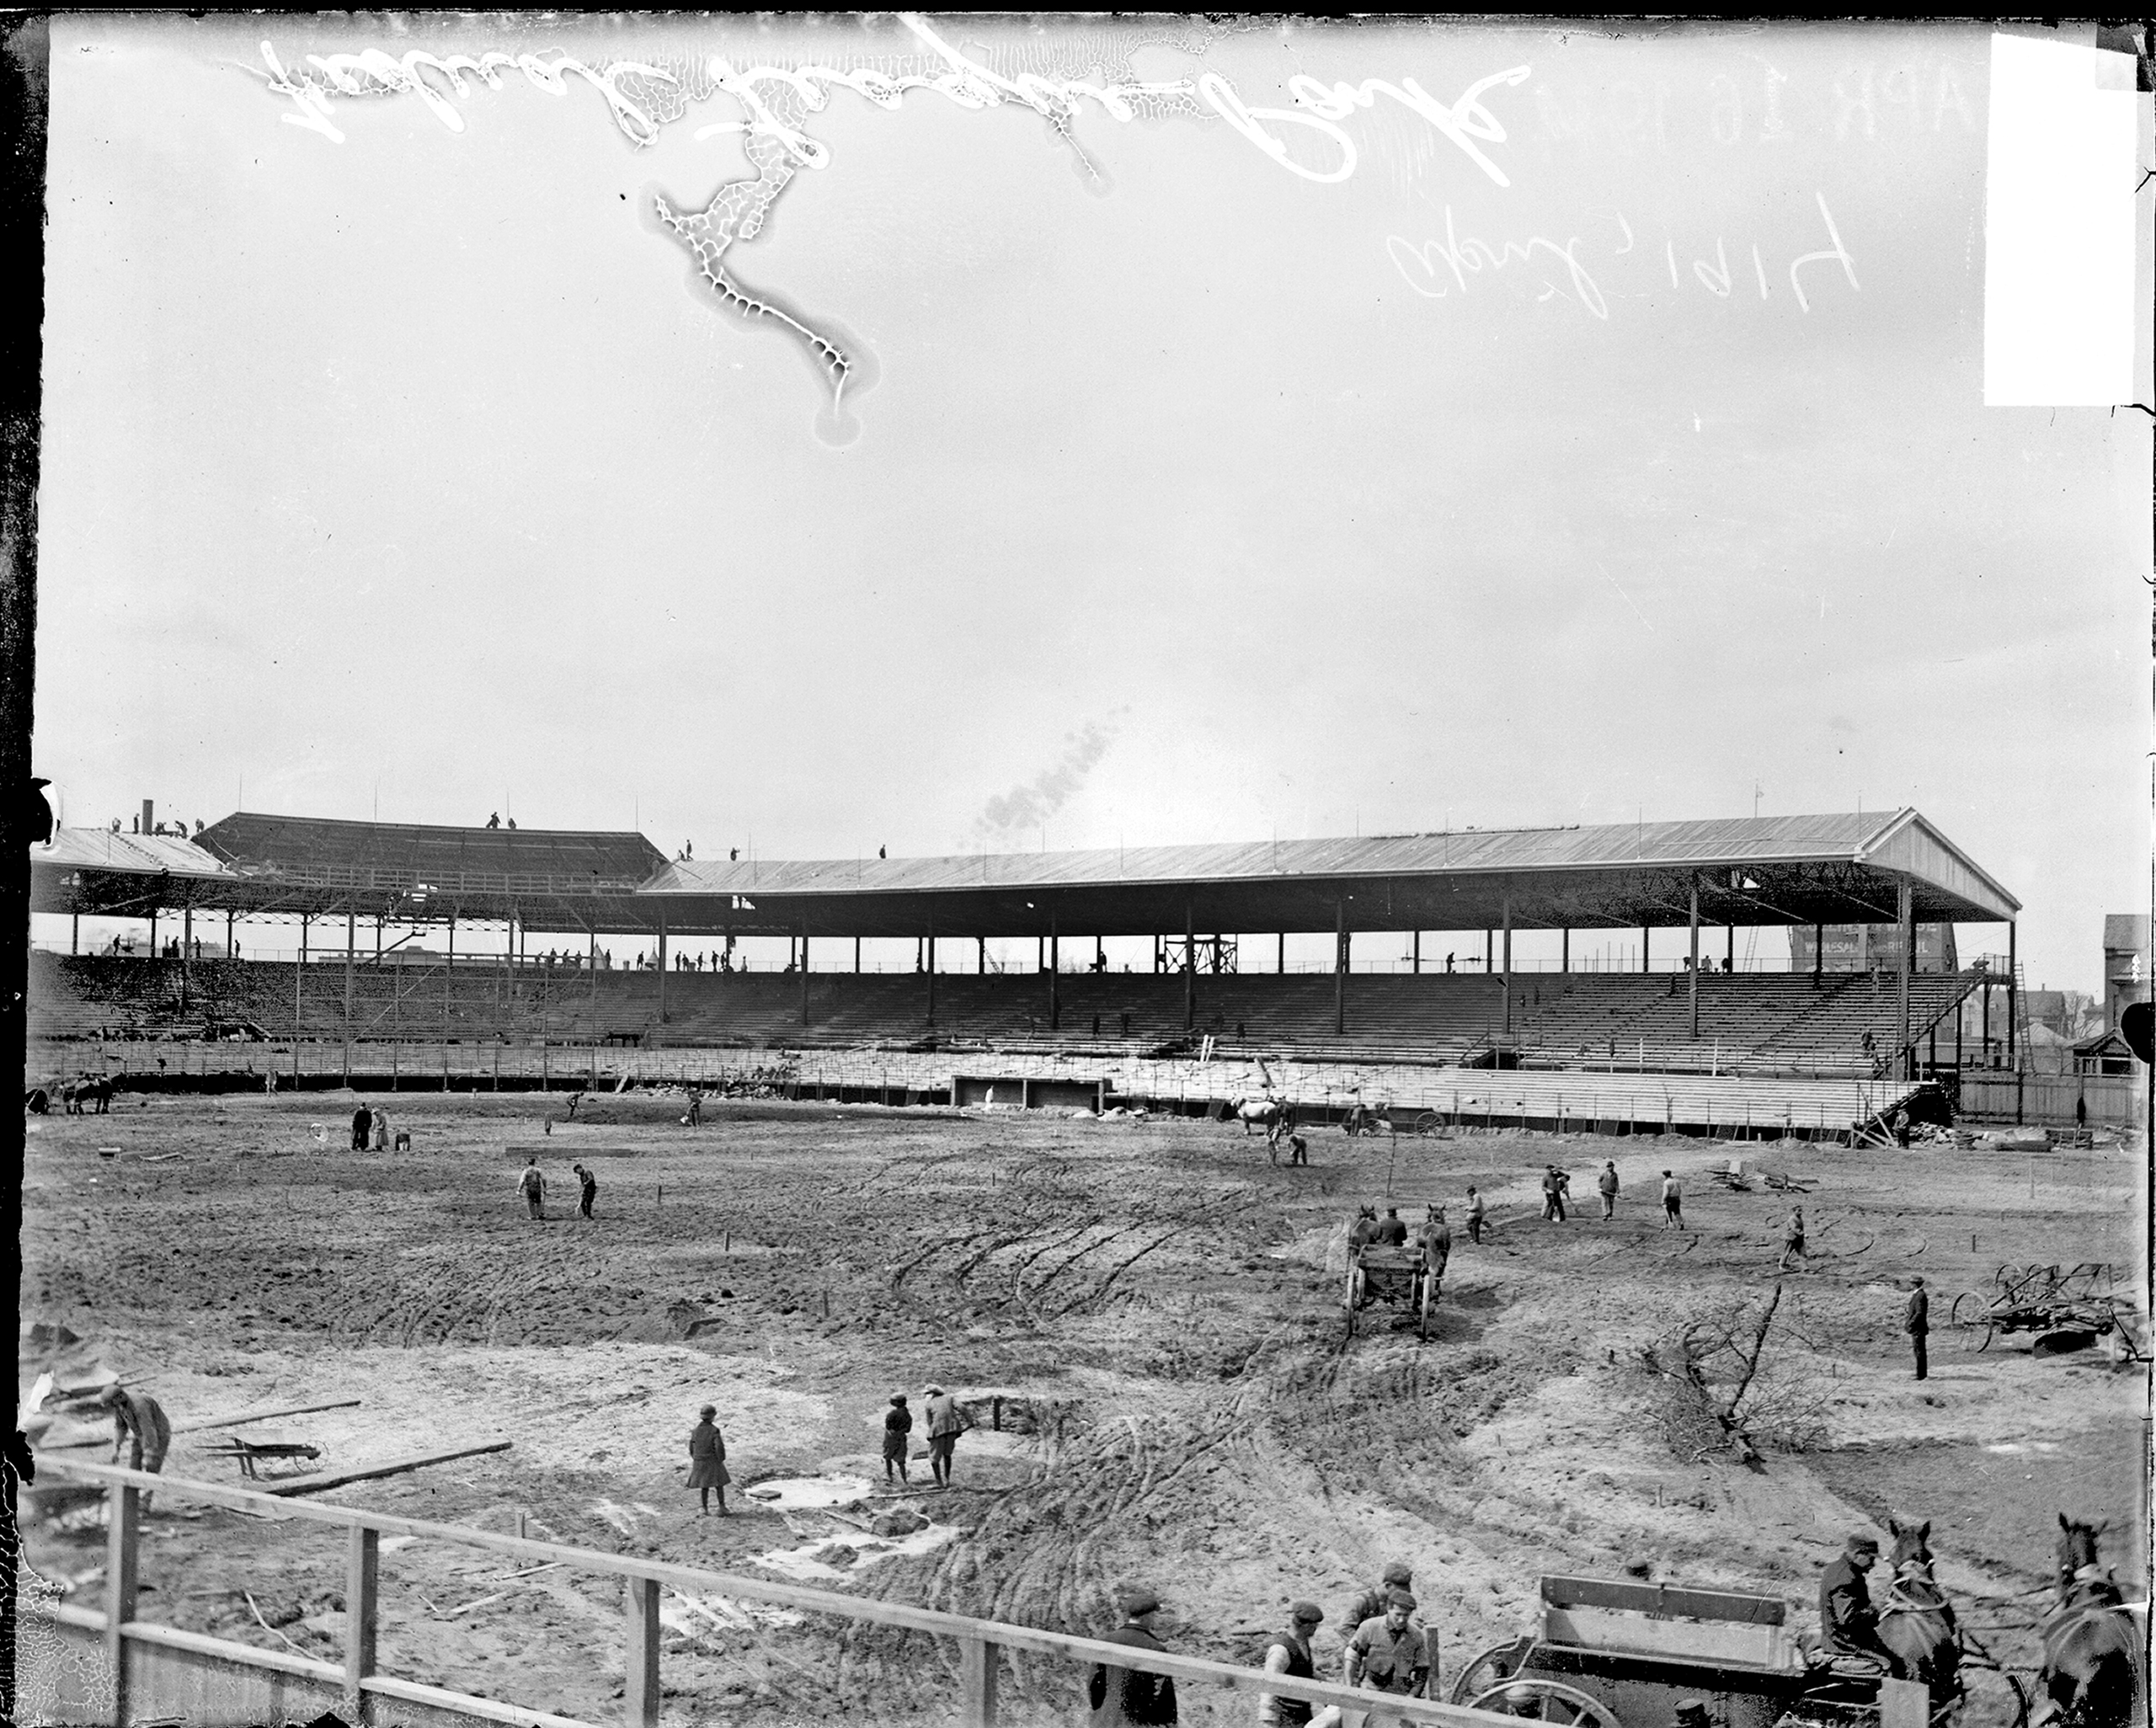 Construction taking place at Federal League ballpark Weeghman Park in Chicago, 1914. From the Chicago Daily News collection.